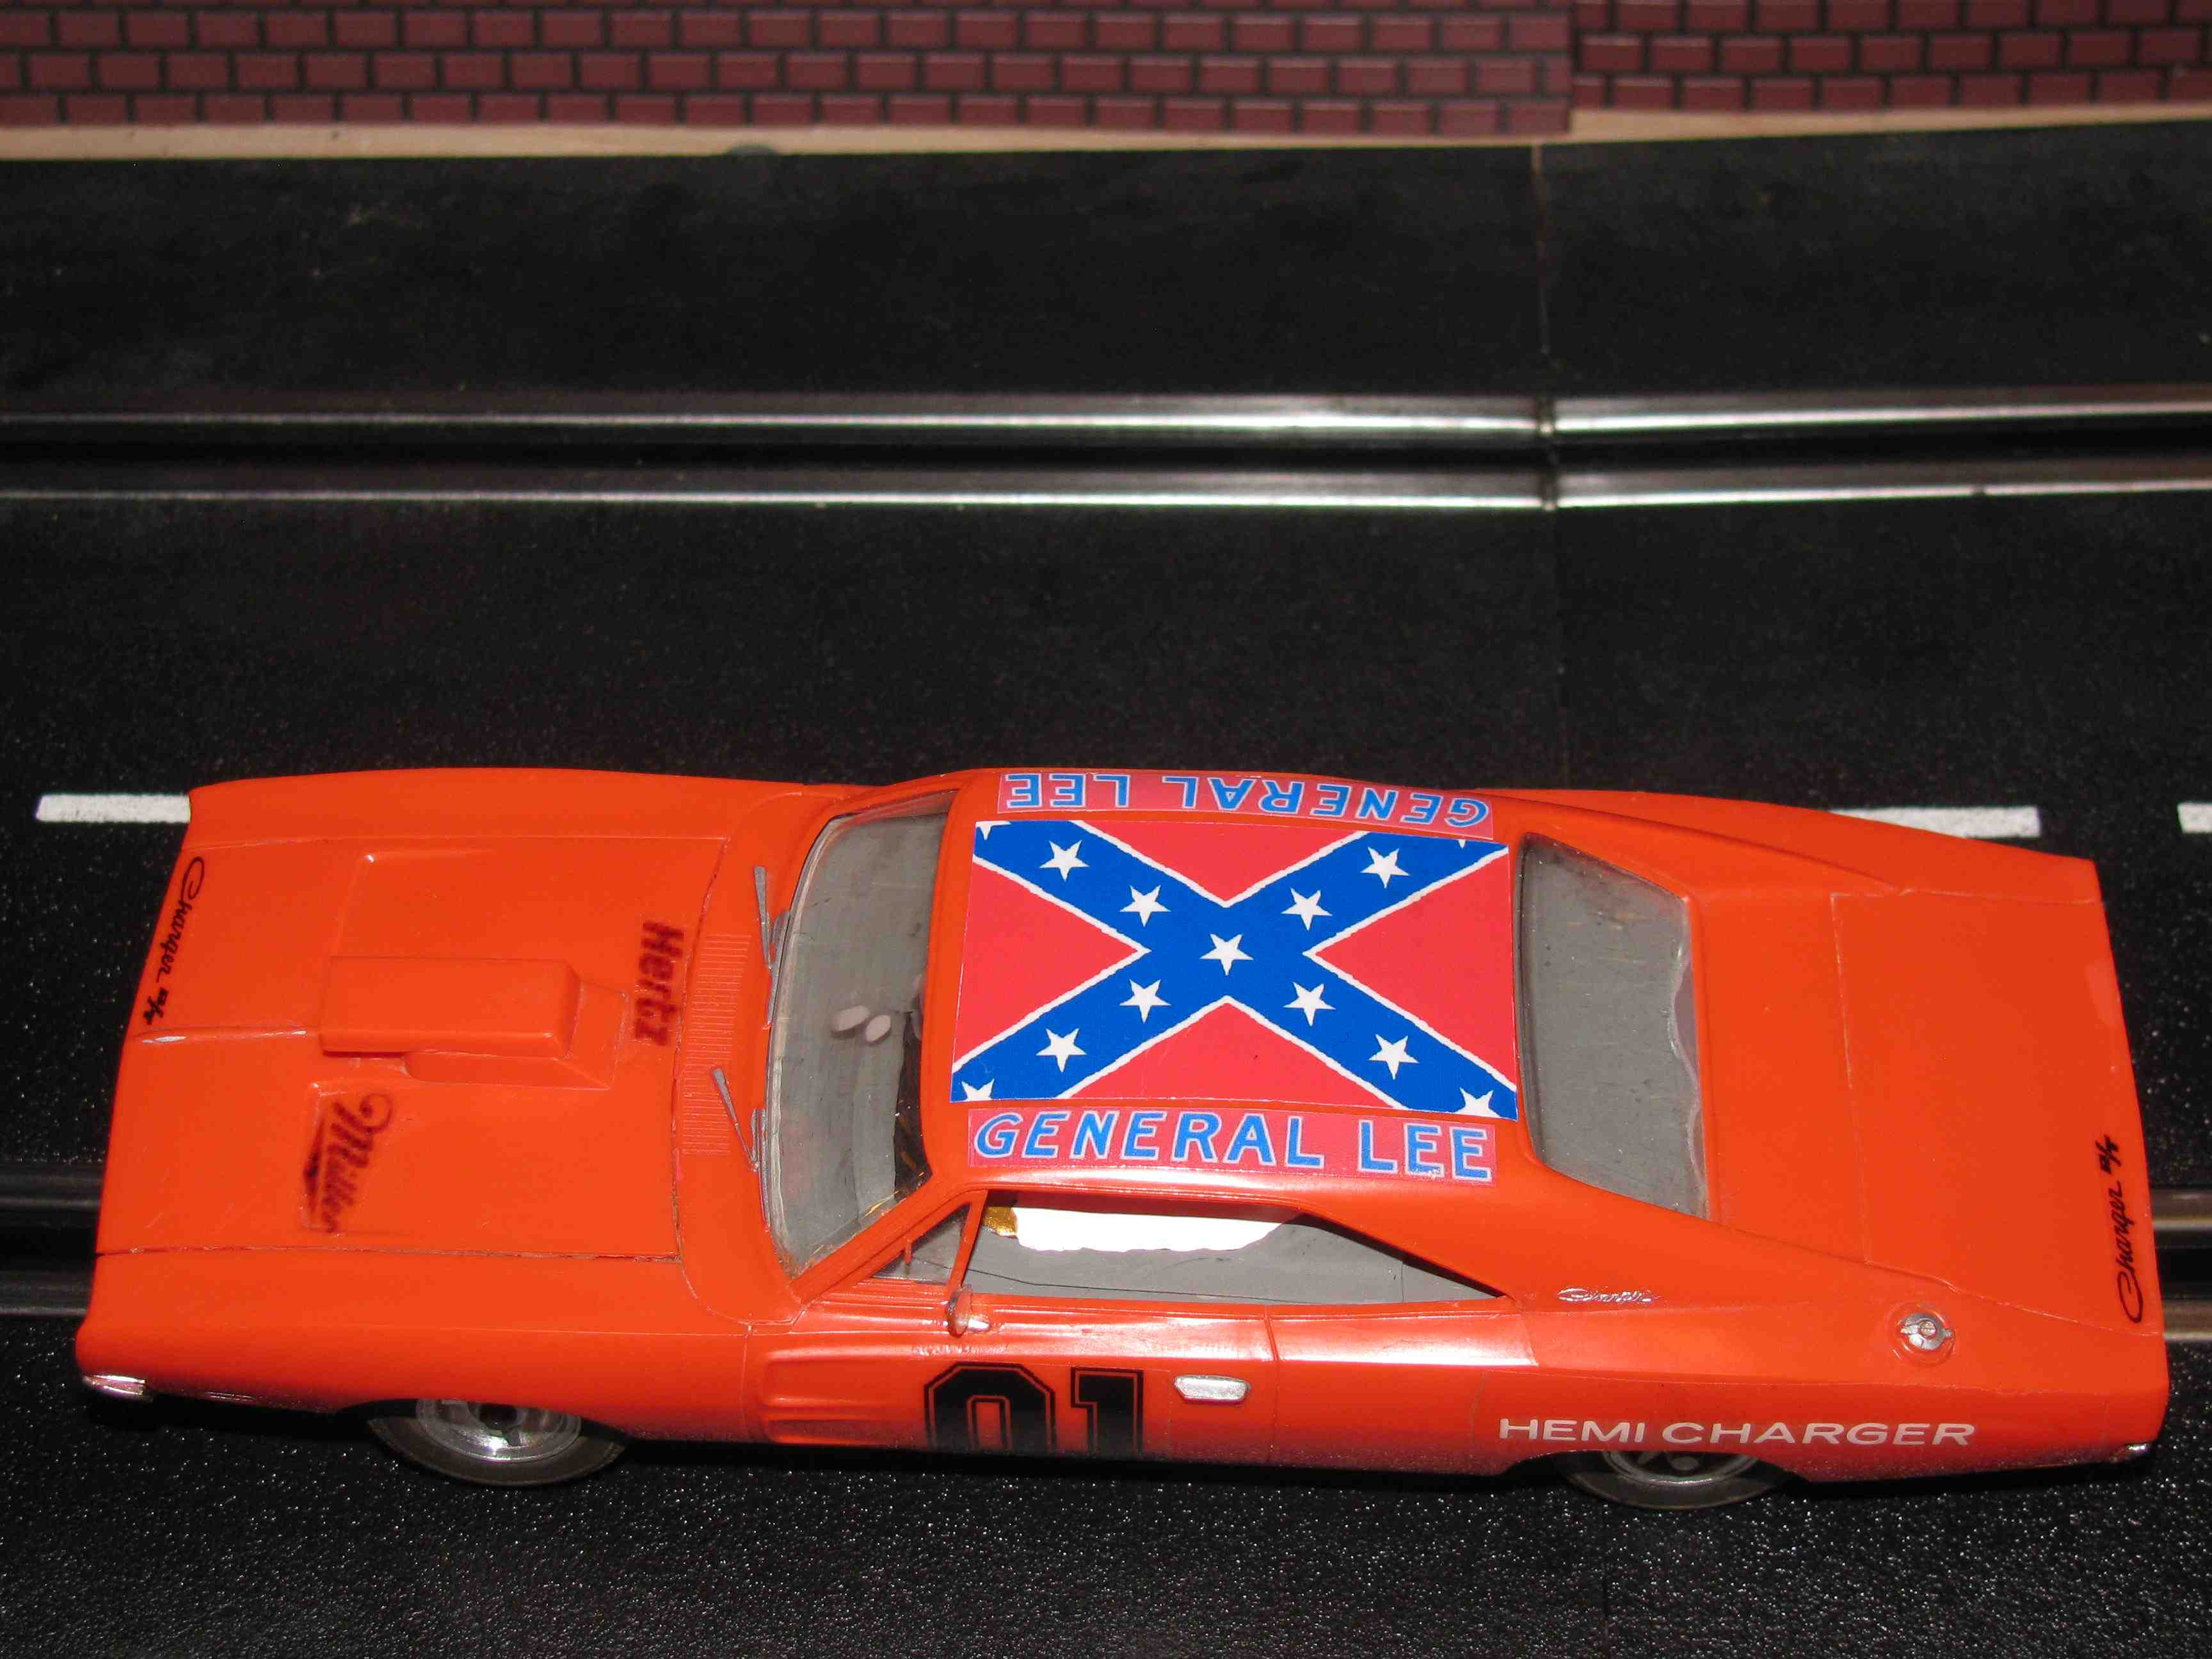 * SOLD * 1969 Dodge Charger R/T – General Lee - Slot Car 1/32 Scale